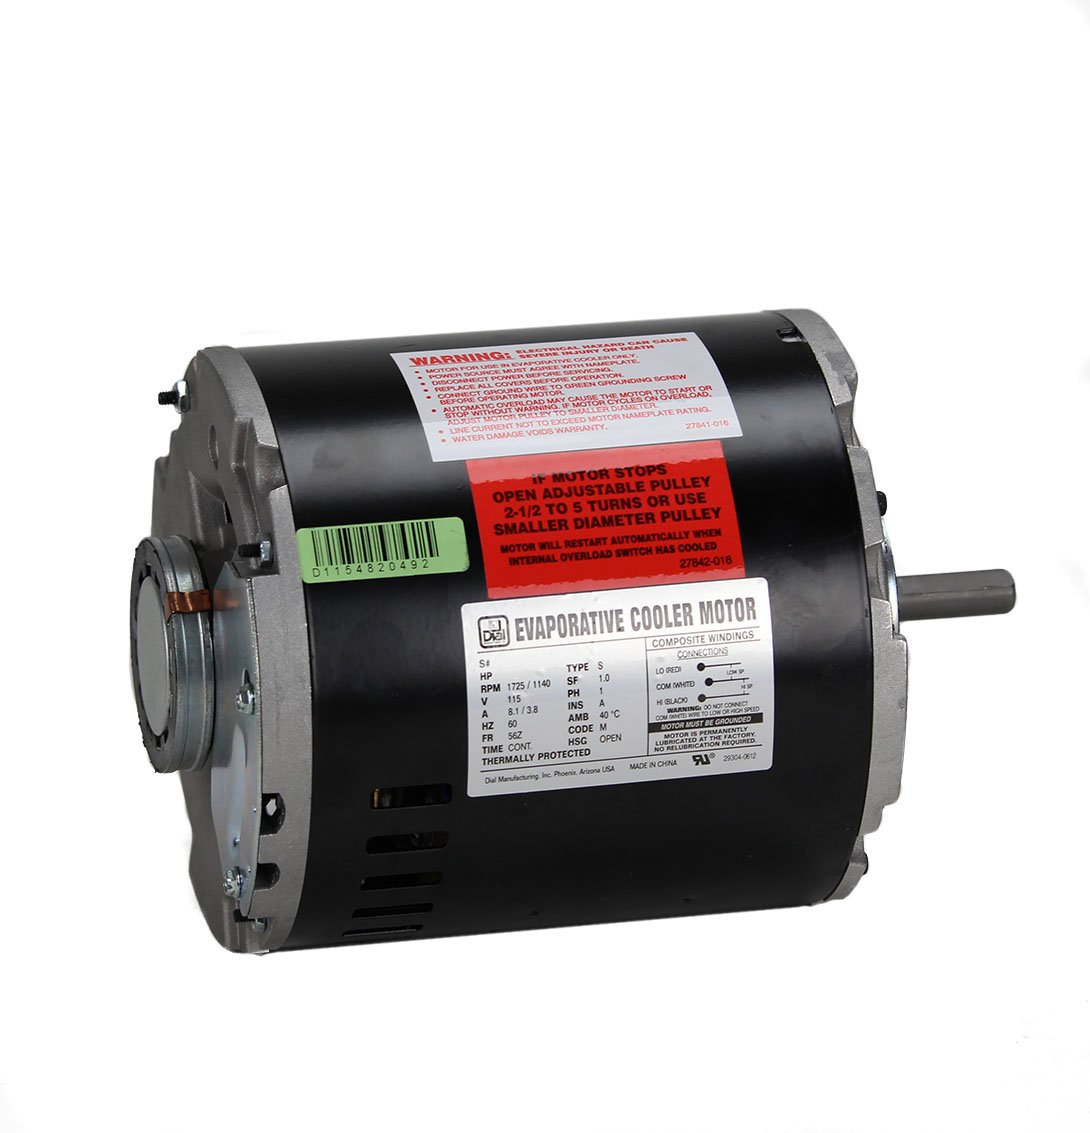 A 2 inch diameter pulley on an electric motor for Evaporative cooler motor 3 4 hp